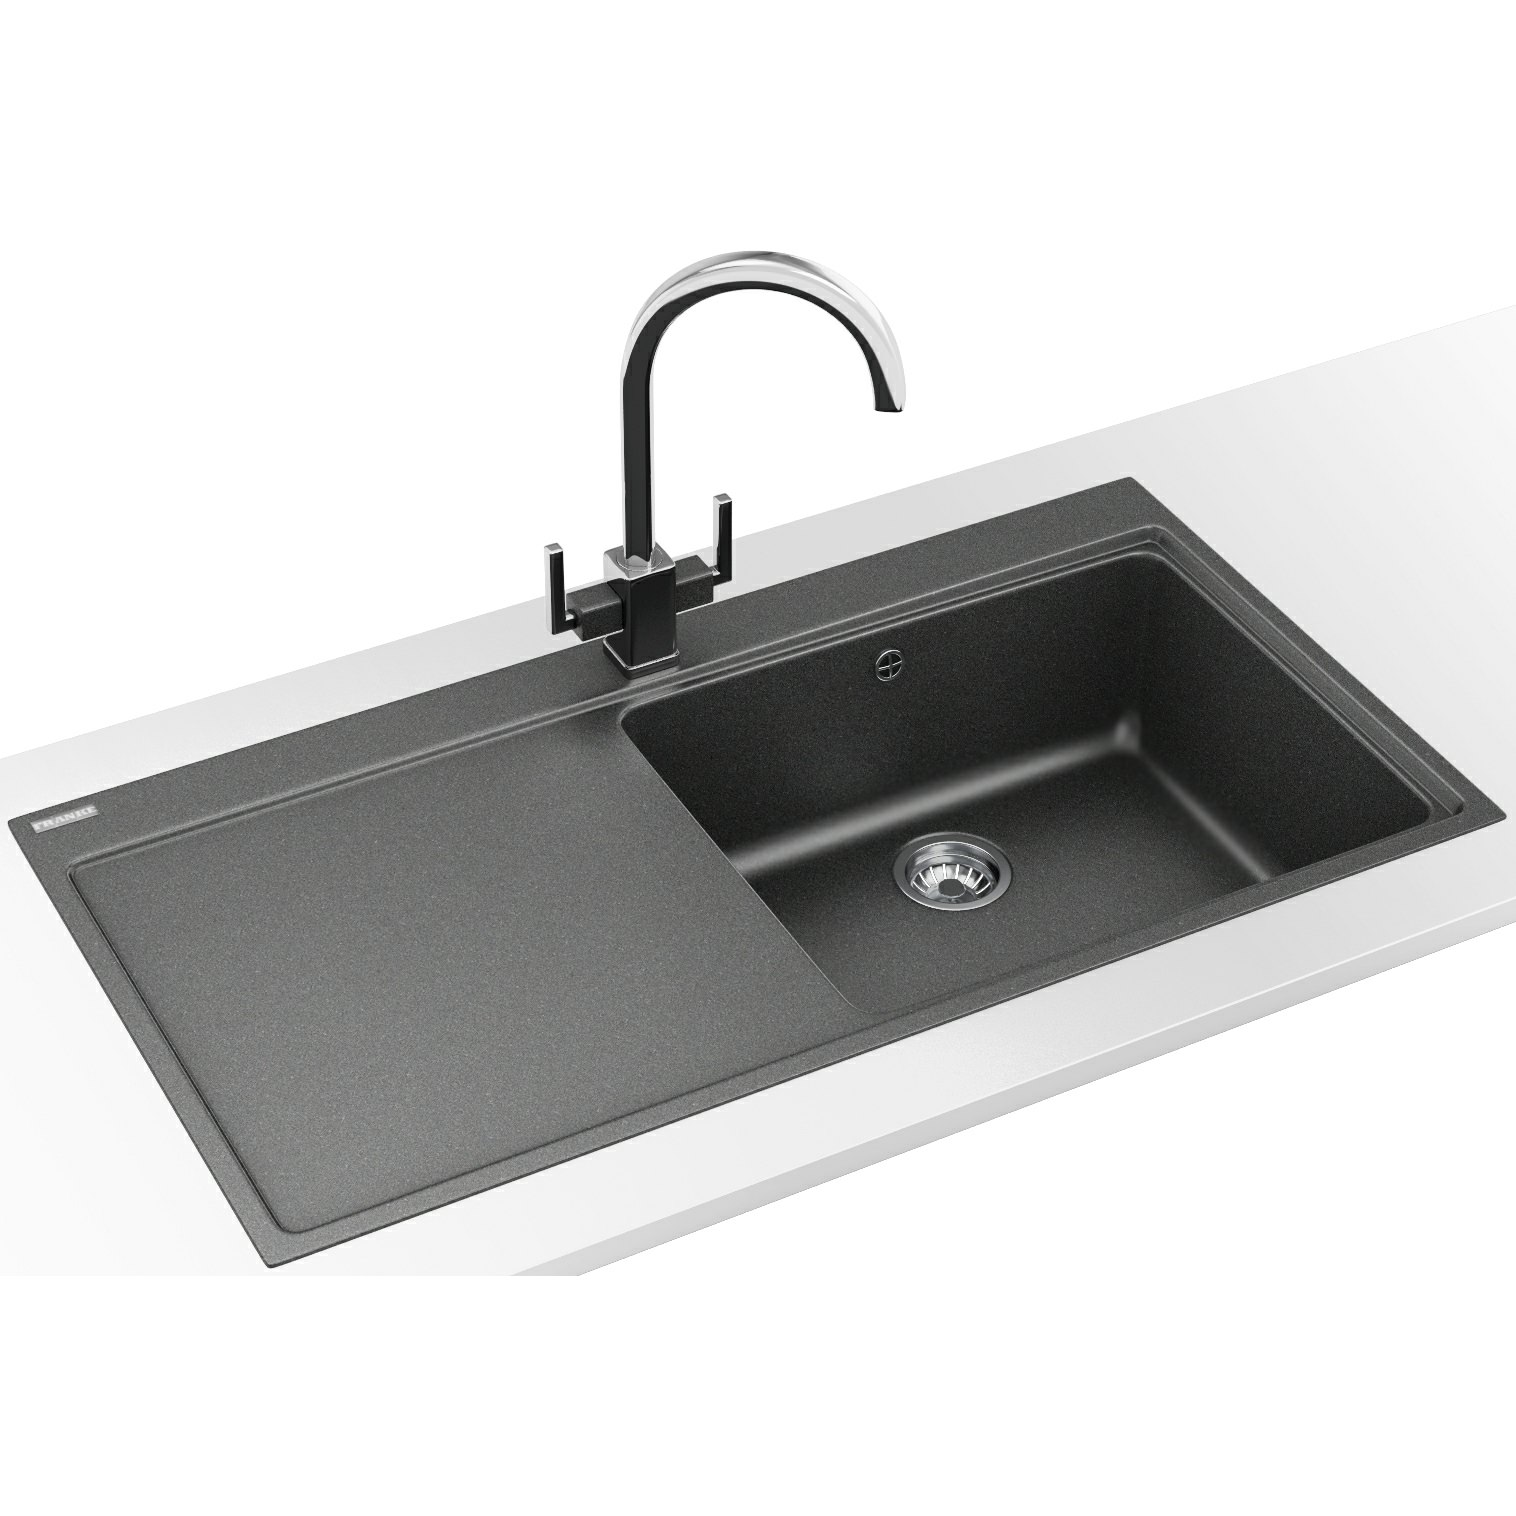 Franke Grey Sink : Franke Mythos Designer Pack MTG 611 Fragranite Stone Grey Kitchen Sink ...